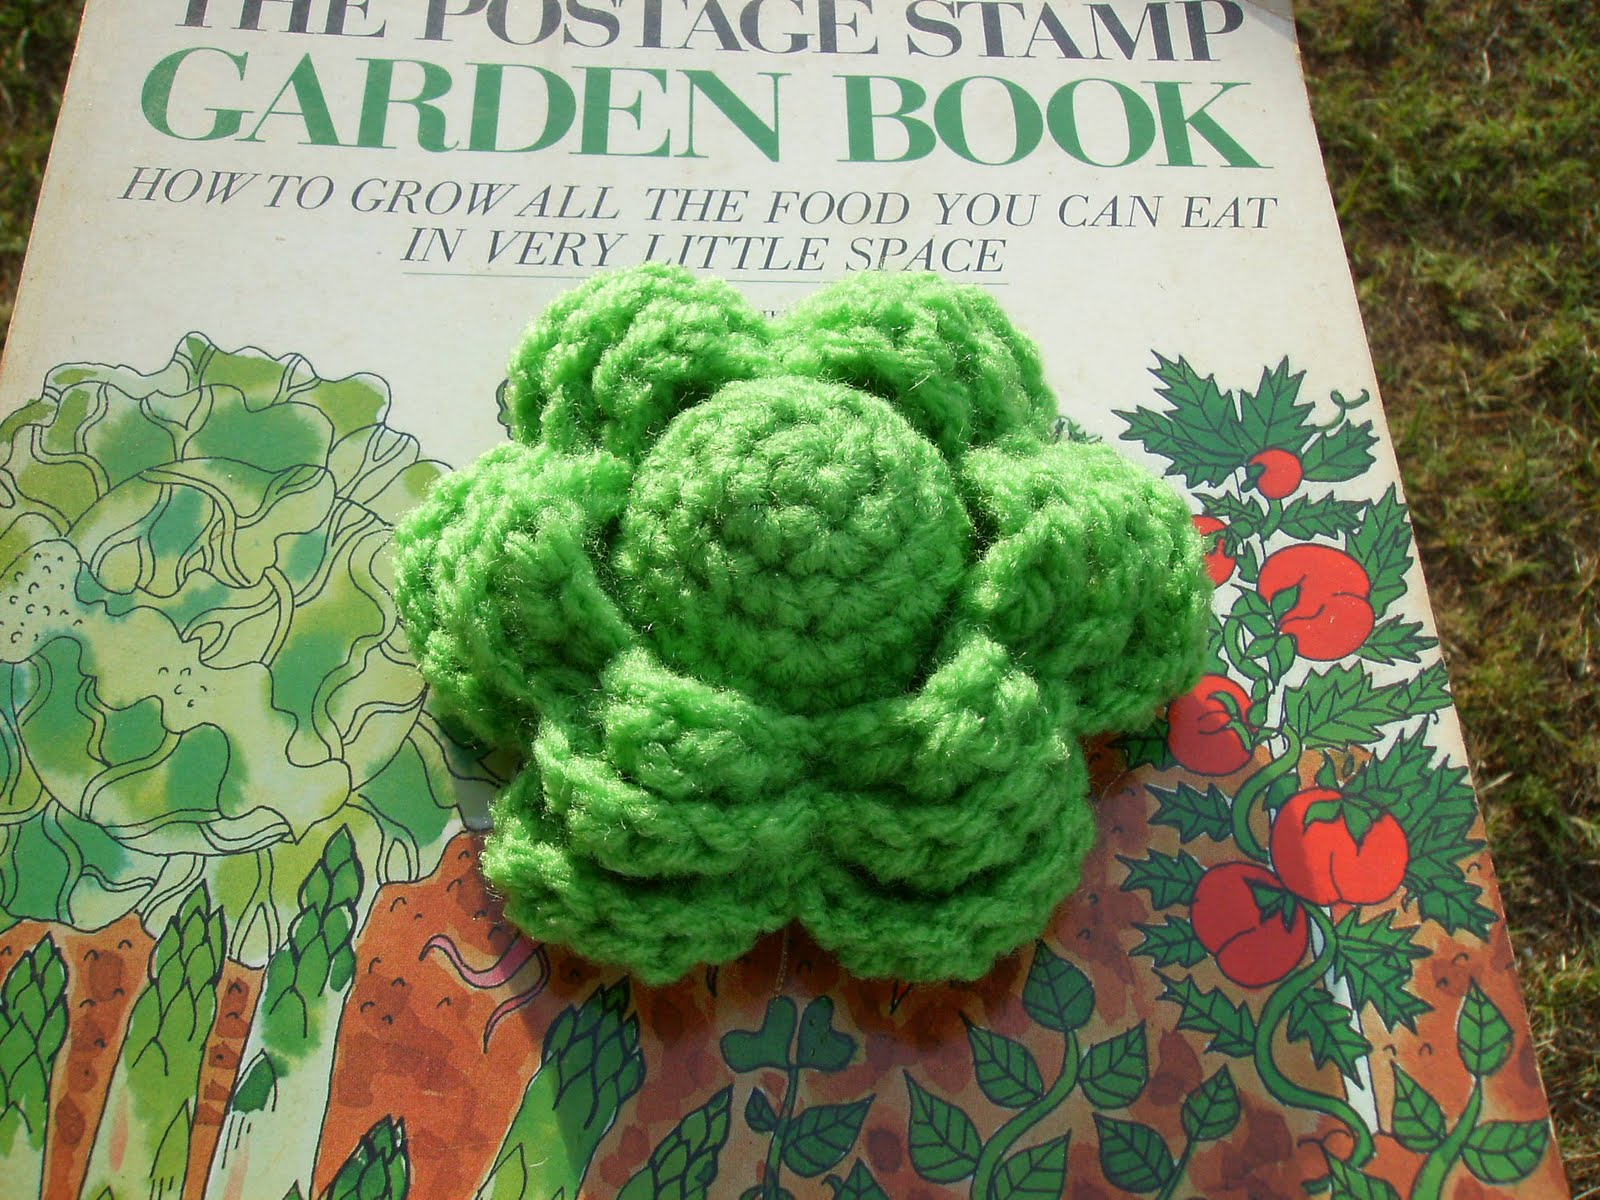 Scrap Yarn Crochet: Free Lettuce Pincushion Crochet Pattern